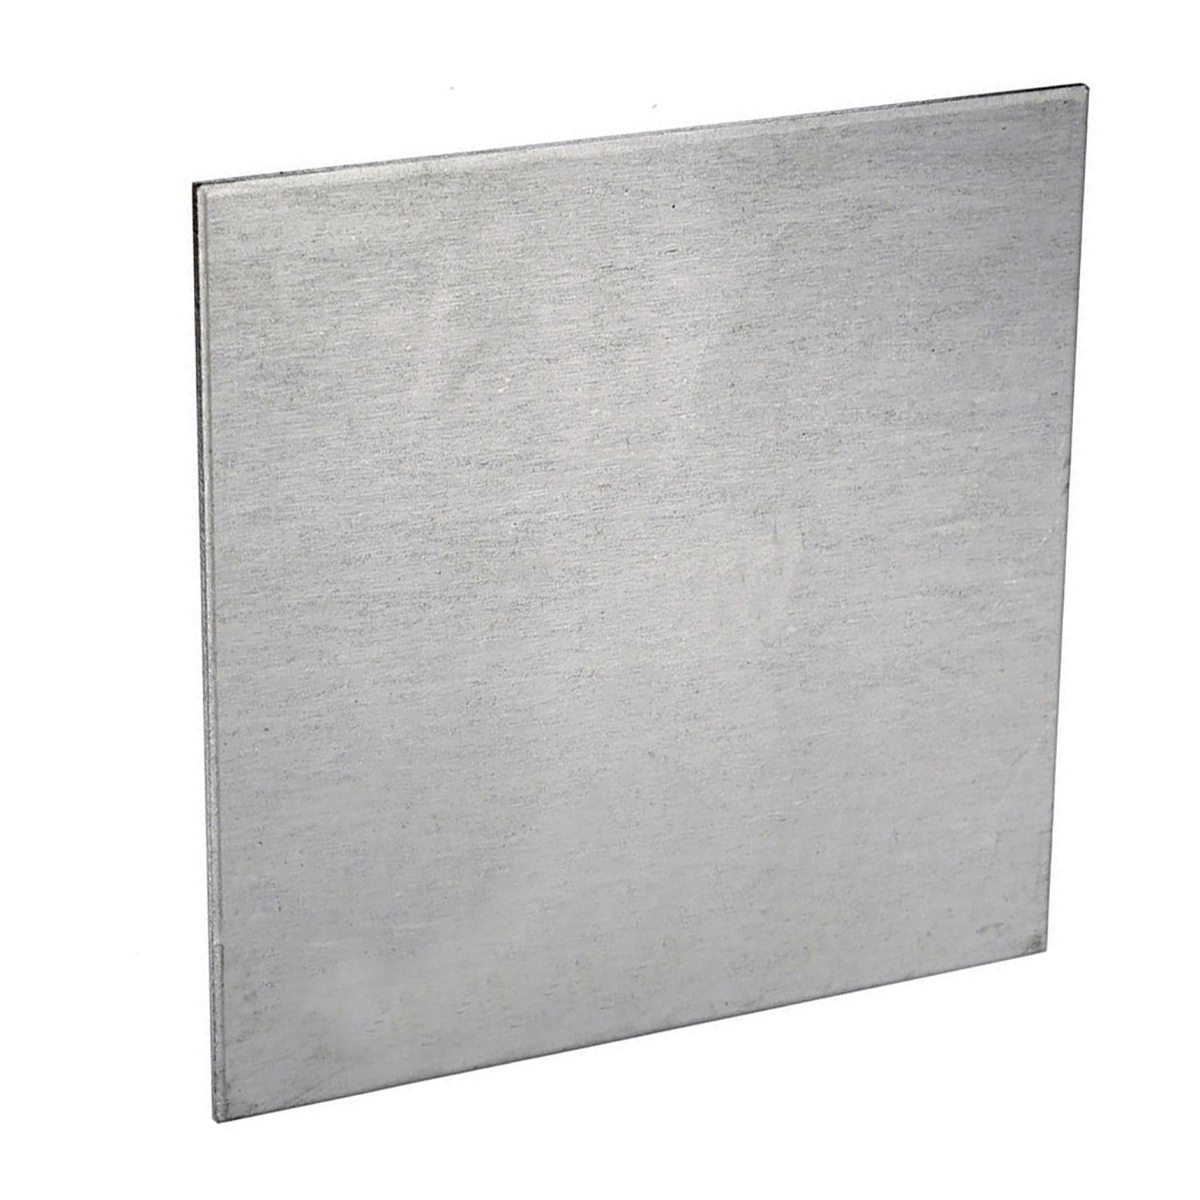 1pc 0.5mm 0.8mm 1mm 2mm  3mm 4mm  Thickness Titanium Ti Plate Sheet Gr2 Grade 2 ASTM B265 100x100mm With High Hardness